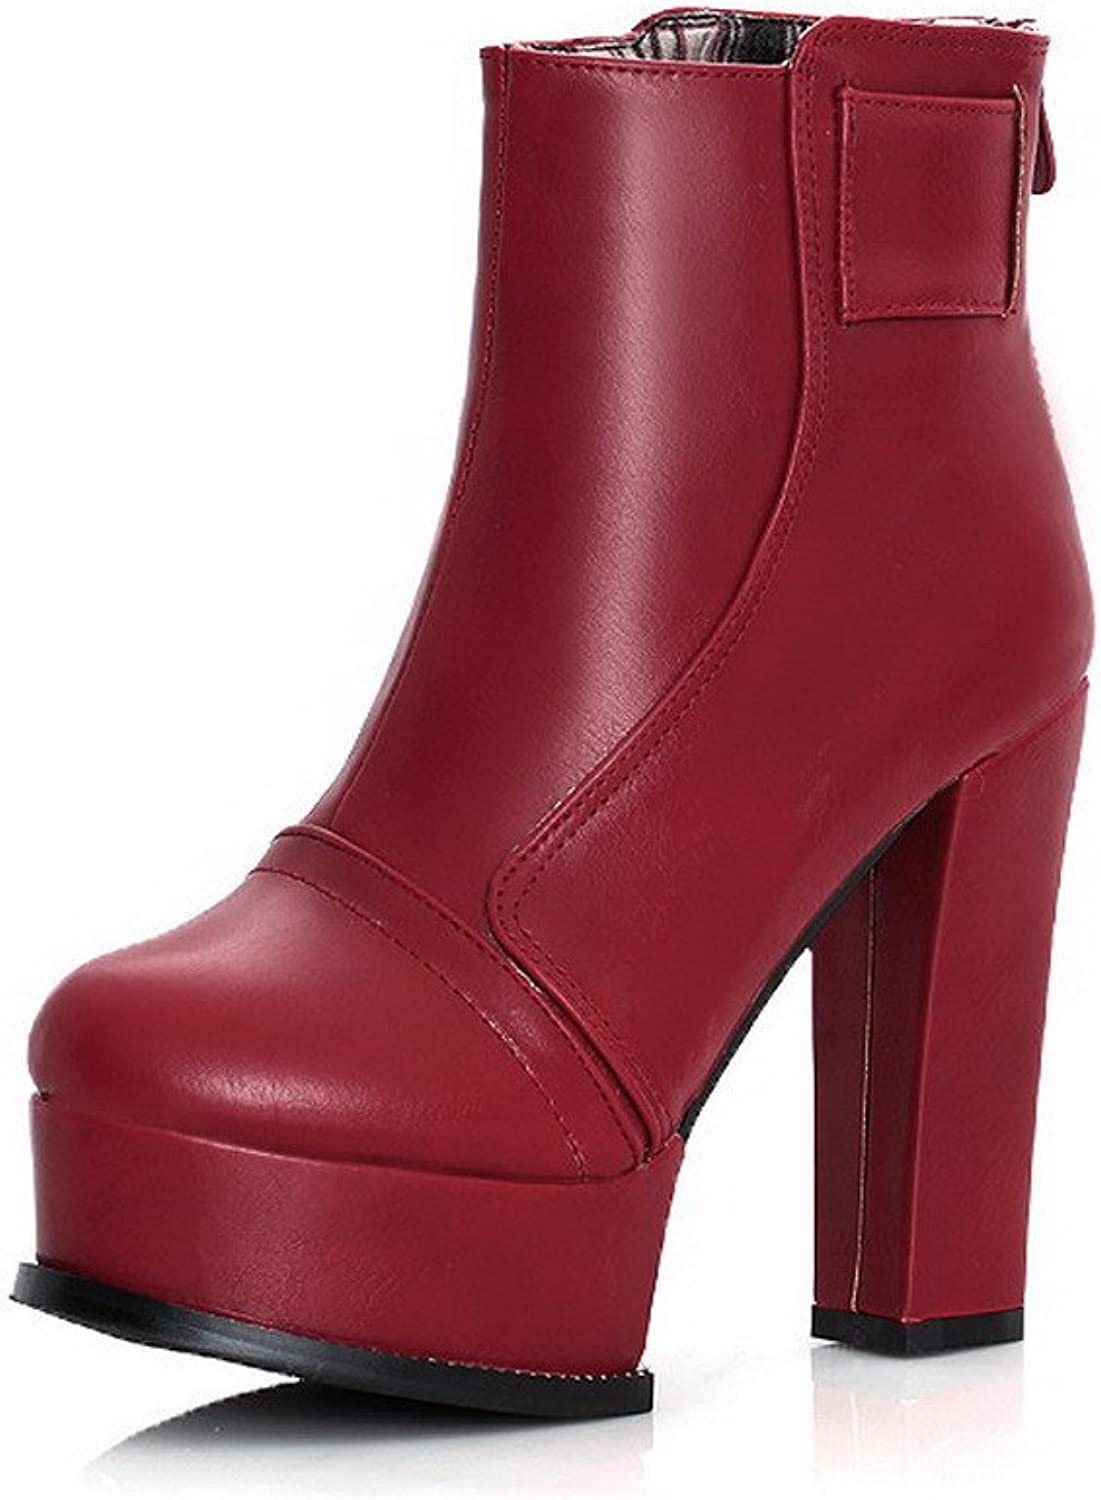 AmoonyFashion Women's Round-Toe Closed-Toe High-Heels Boots with Back Zipper and Rough Heels